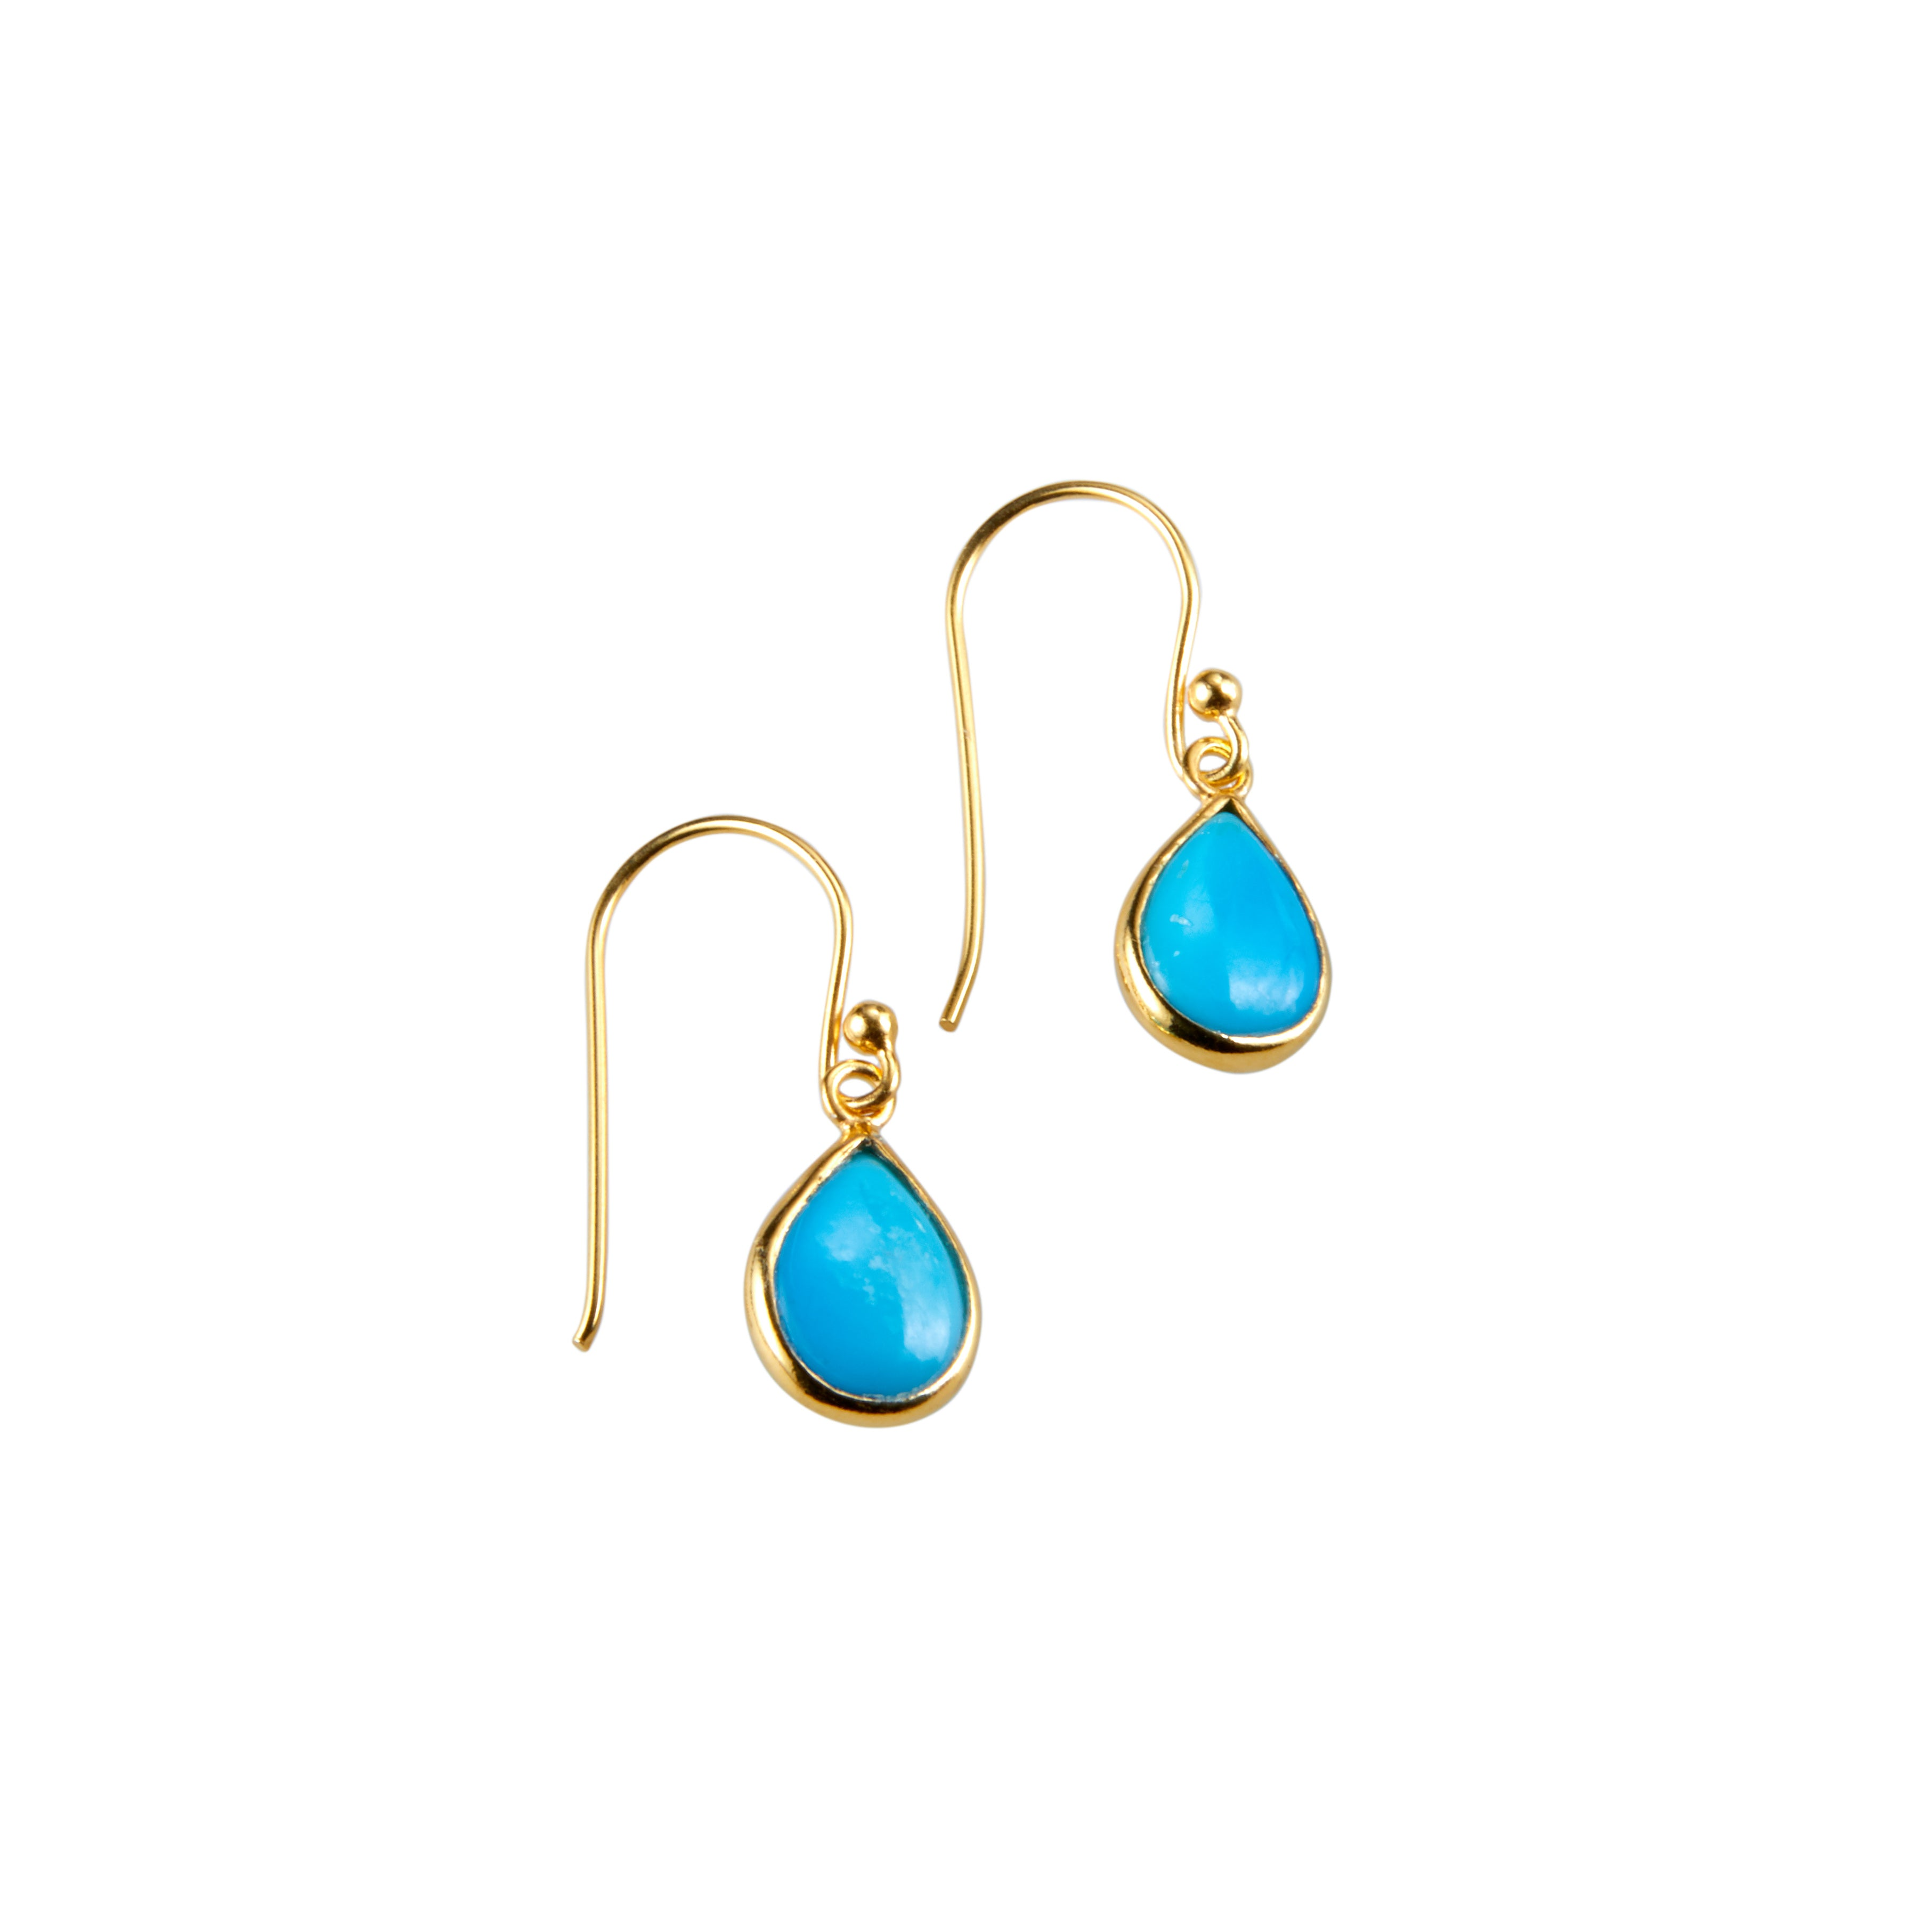 Tear Drop Earring in Gold with Turquoise